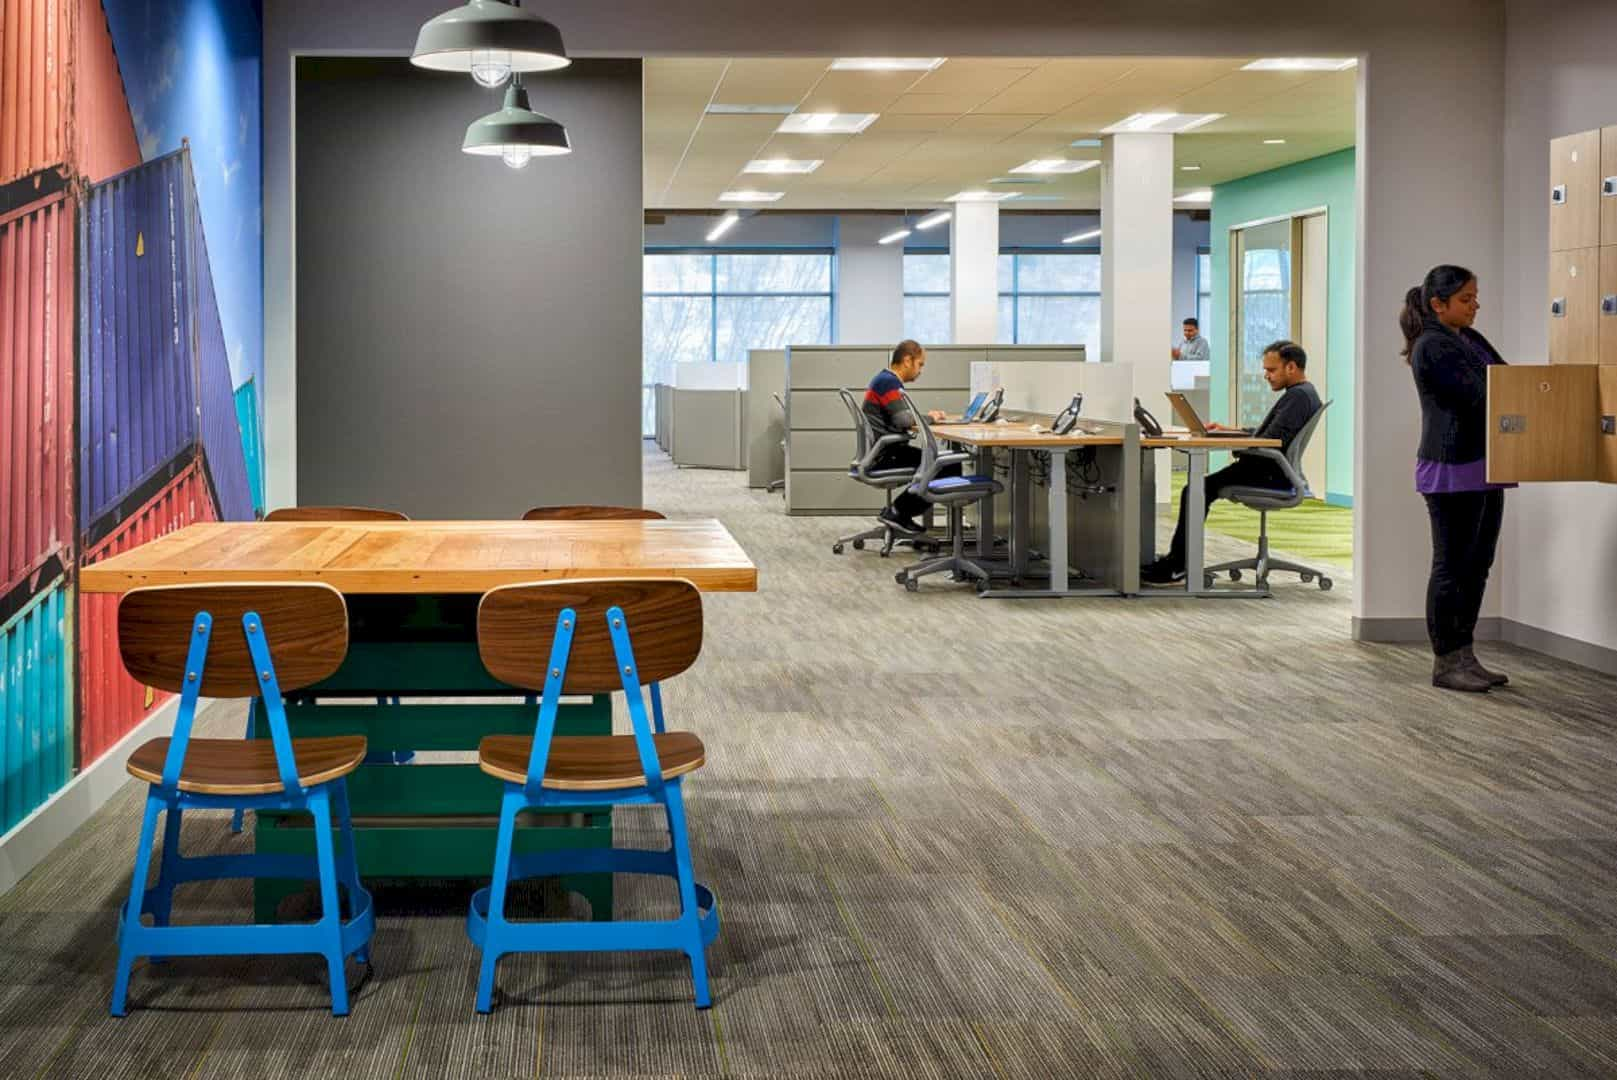 Cisco Systems Inc Building 11 A Diverse Office Landscape That Improves Capacity And Spatial Efficiency 5